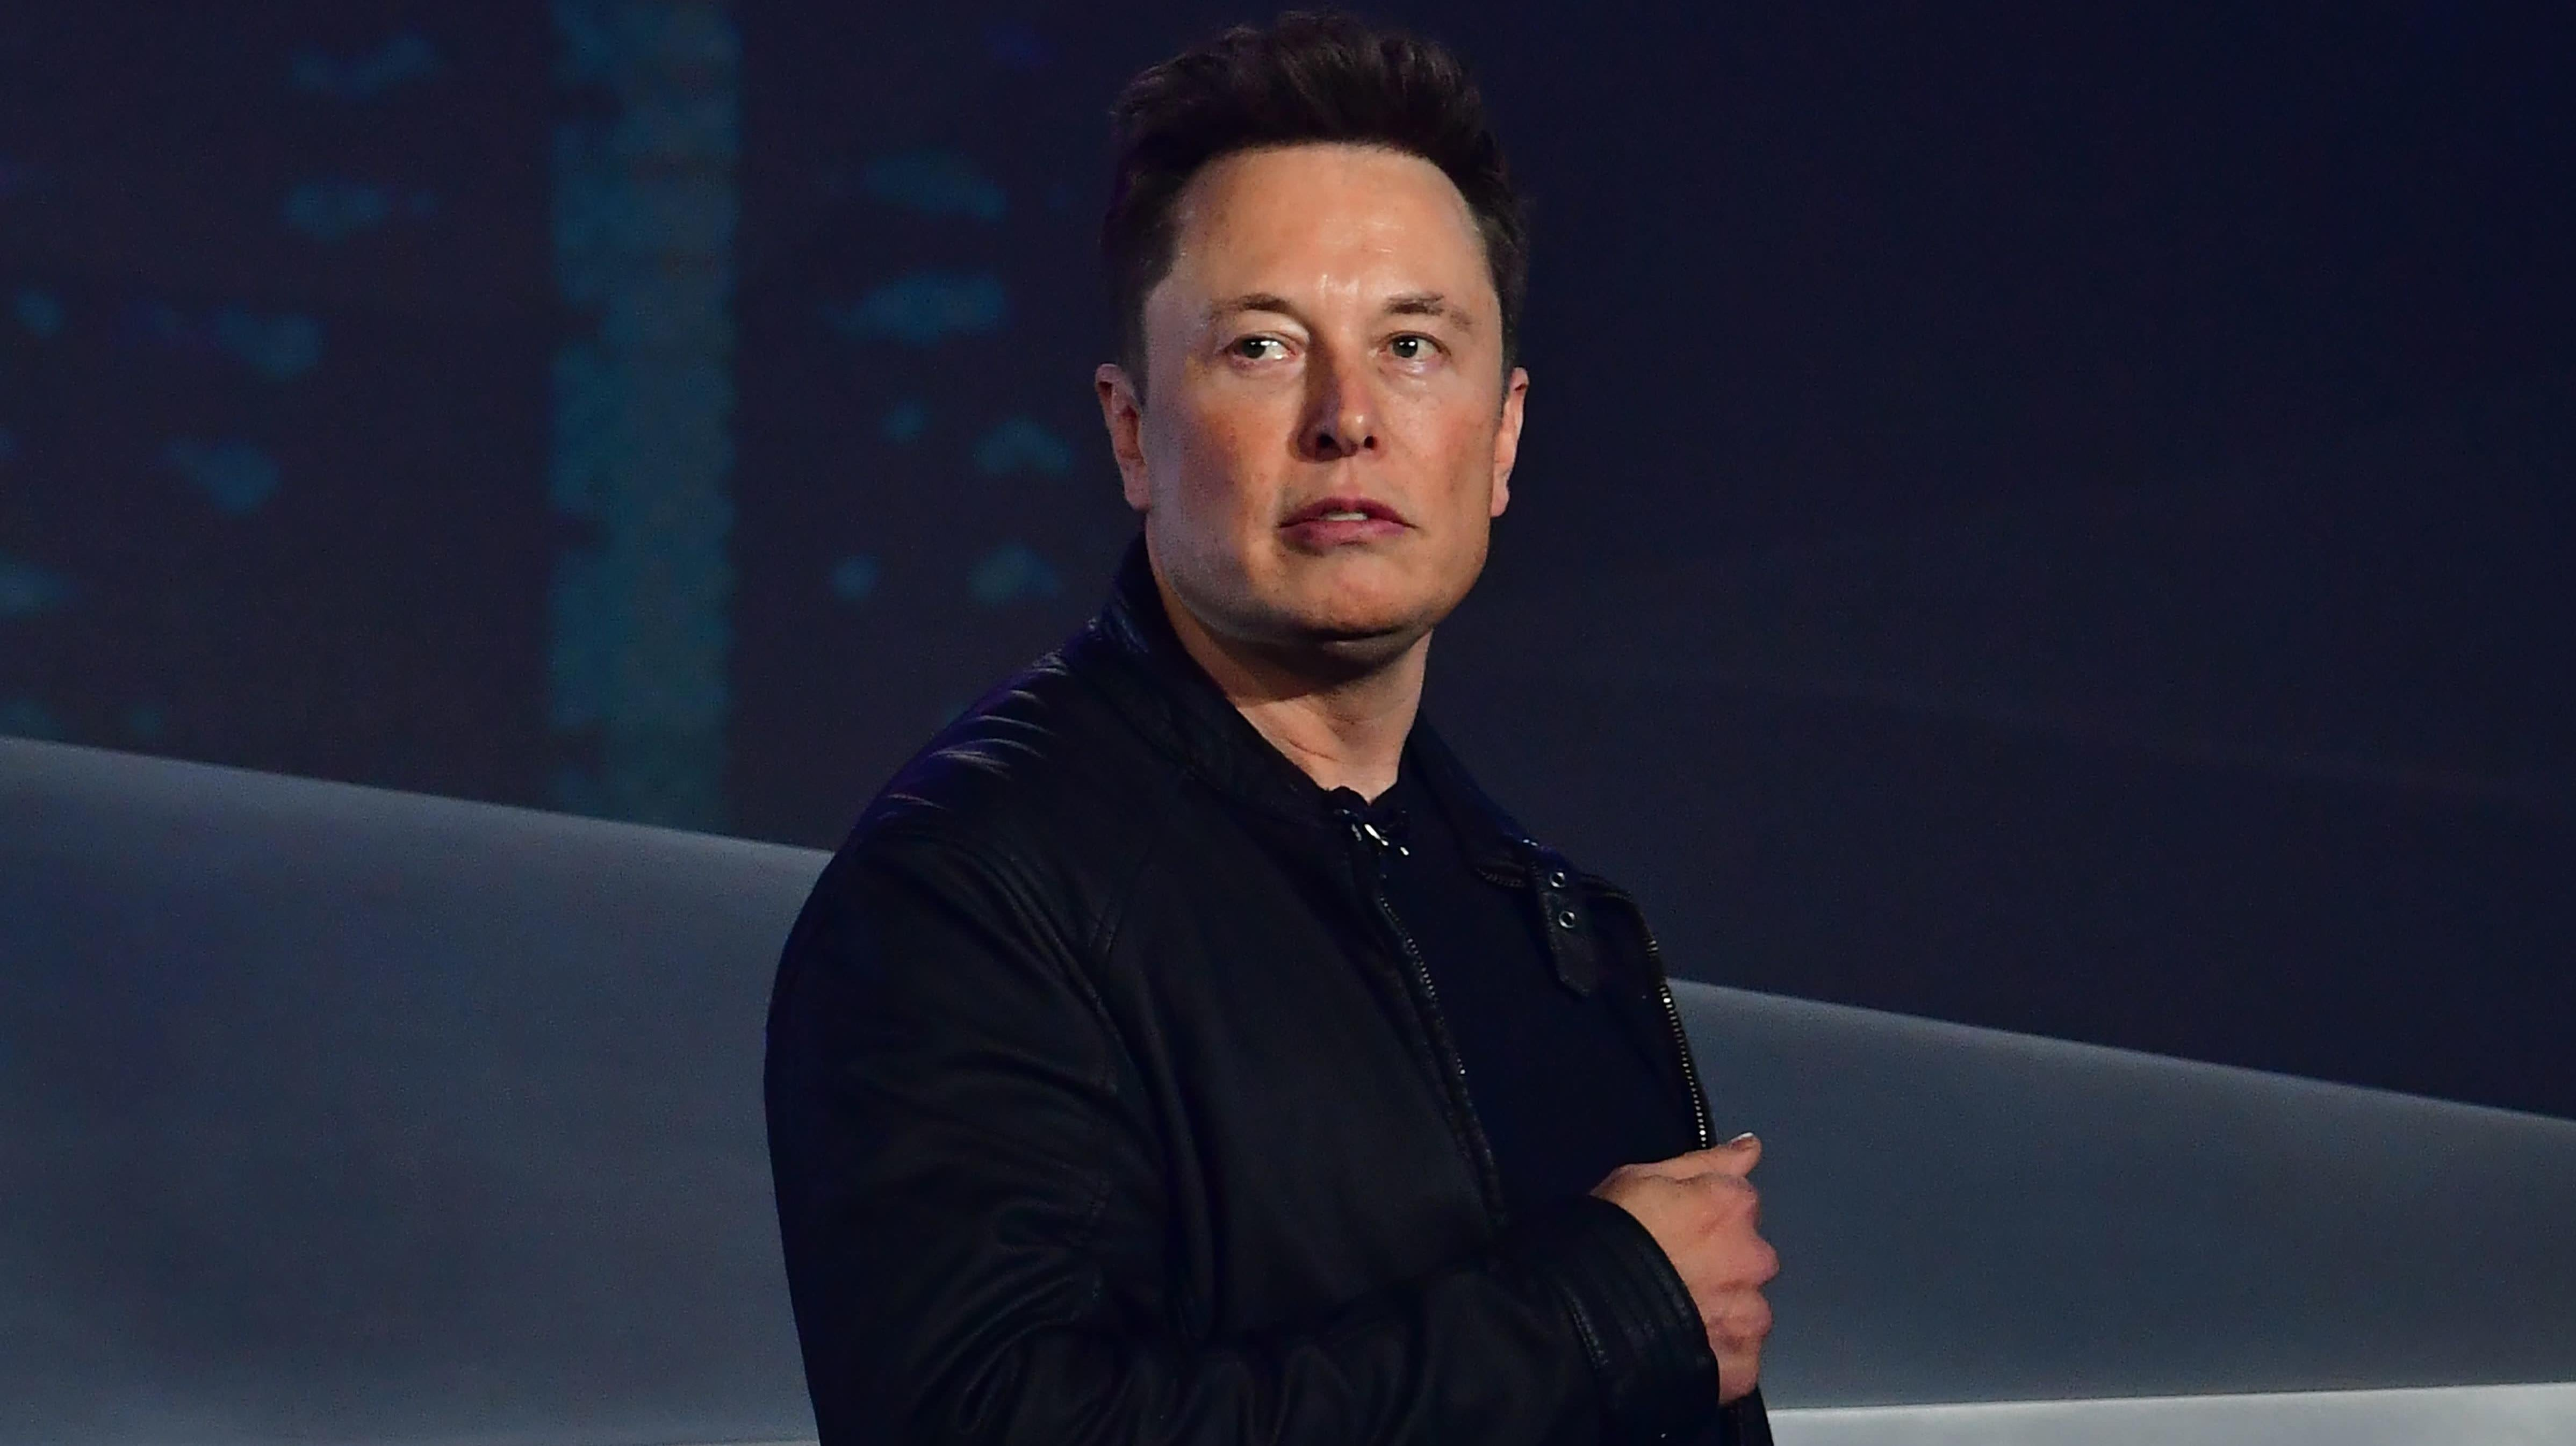 Musk To Testify He Didn't Do The Thing And Furthermore, He Deleted The Thing That He Did